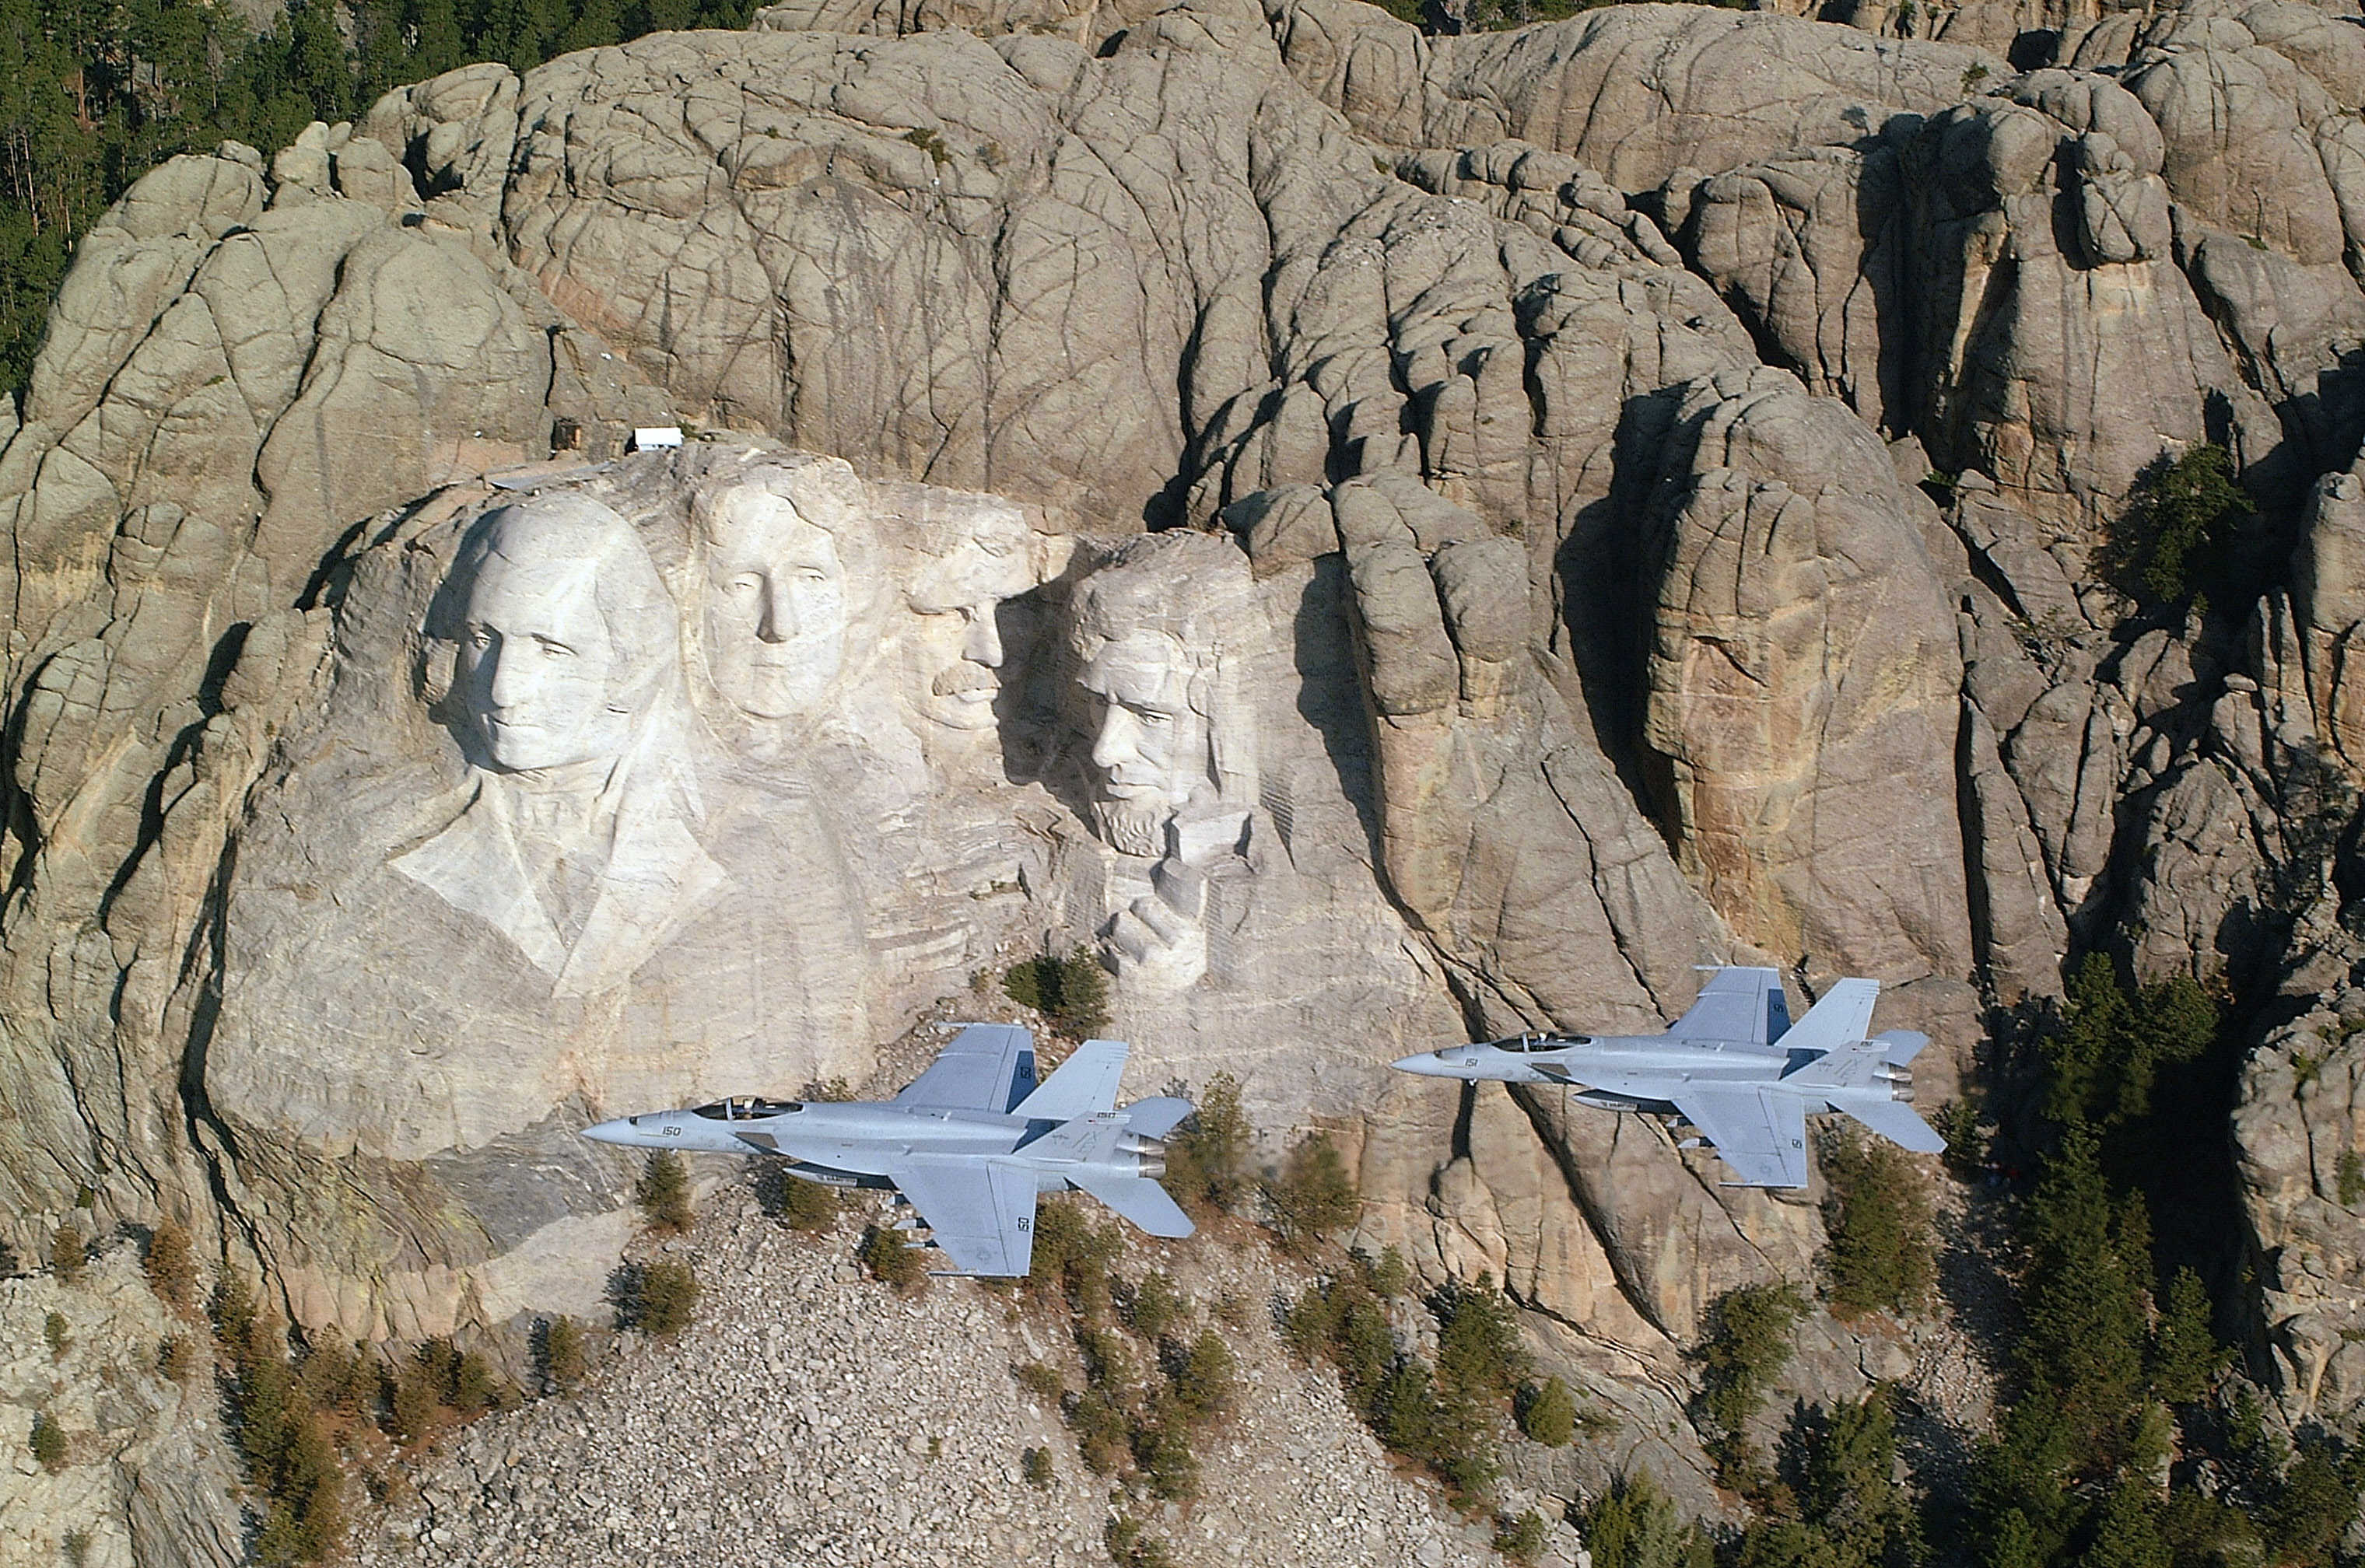 Worksheet Building Mount Rushmore carved by dynamite massive founding fathers at mt rushmore 34 pics u s navy photo 8 lt anthony dobson